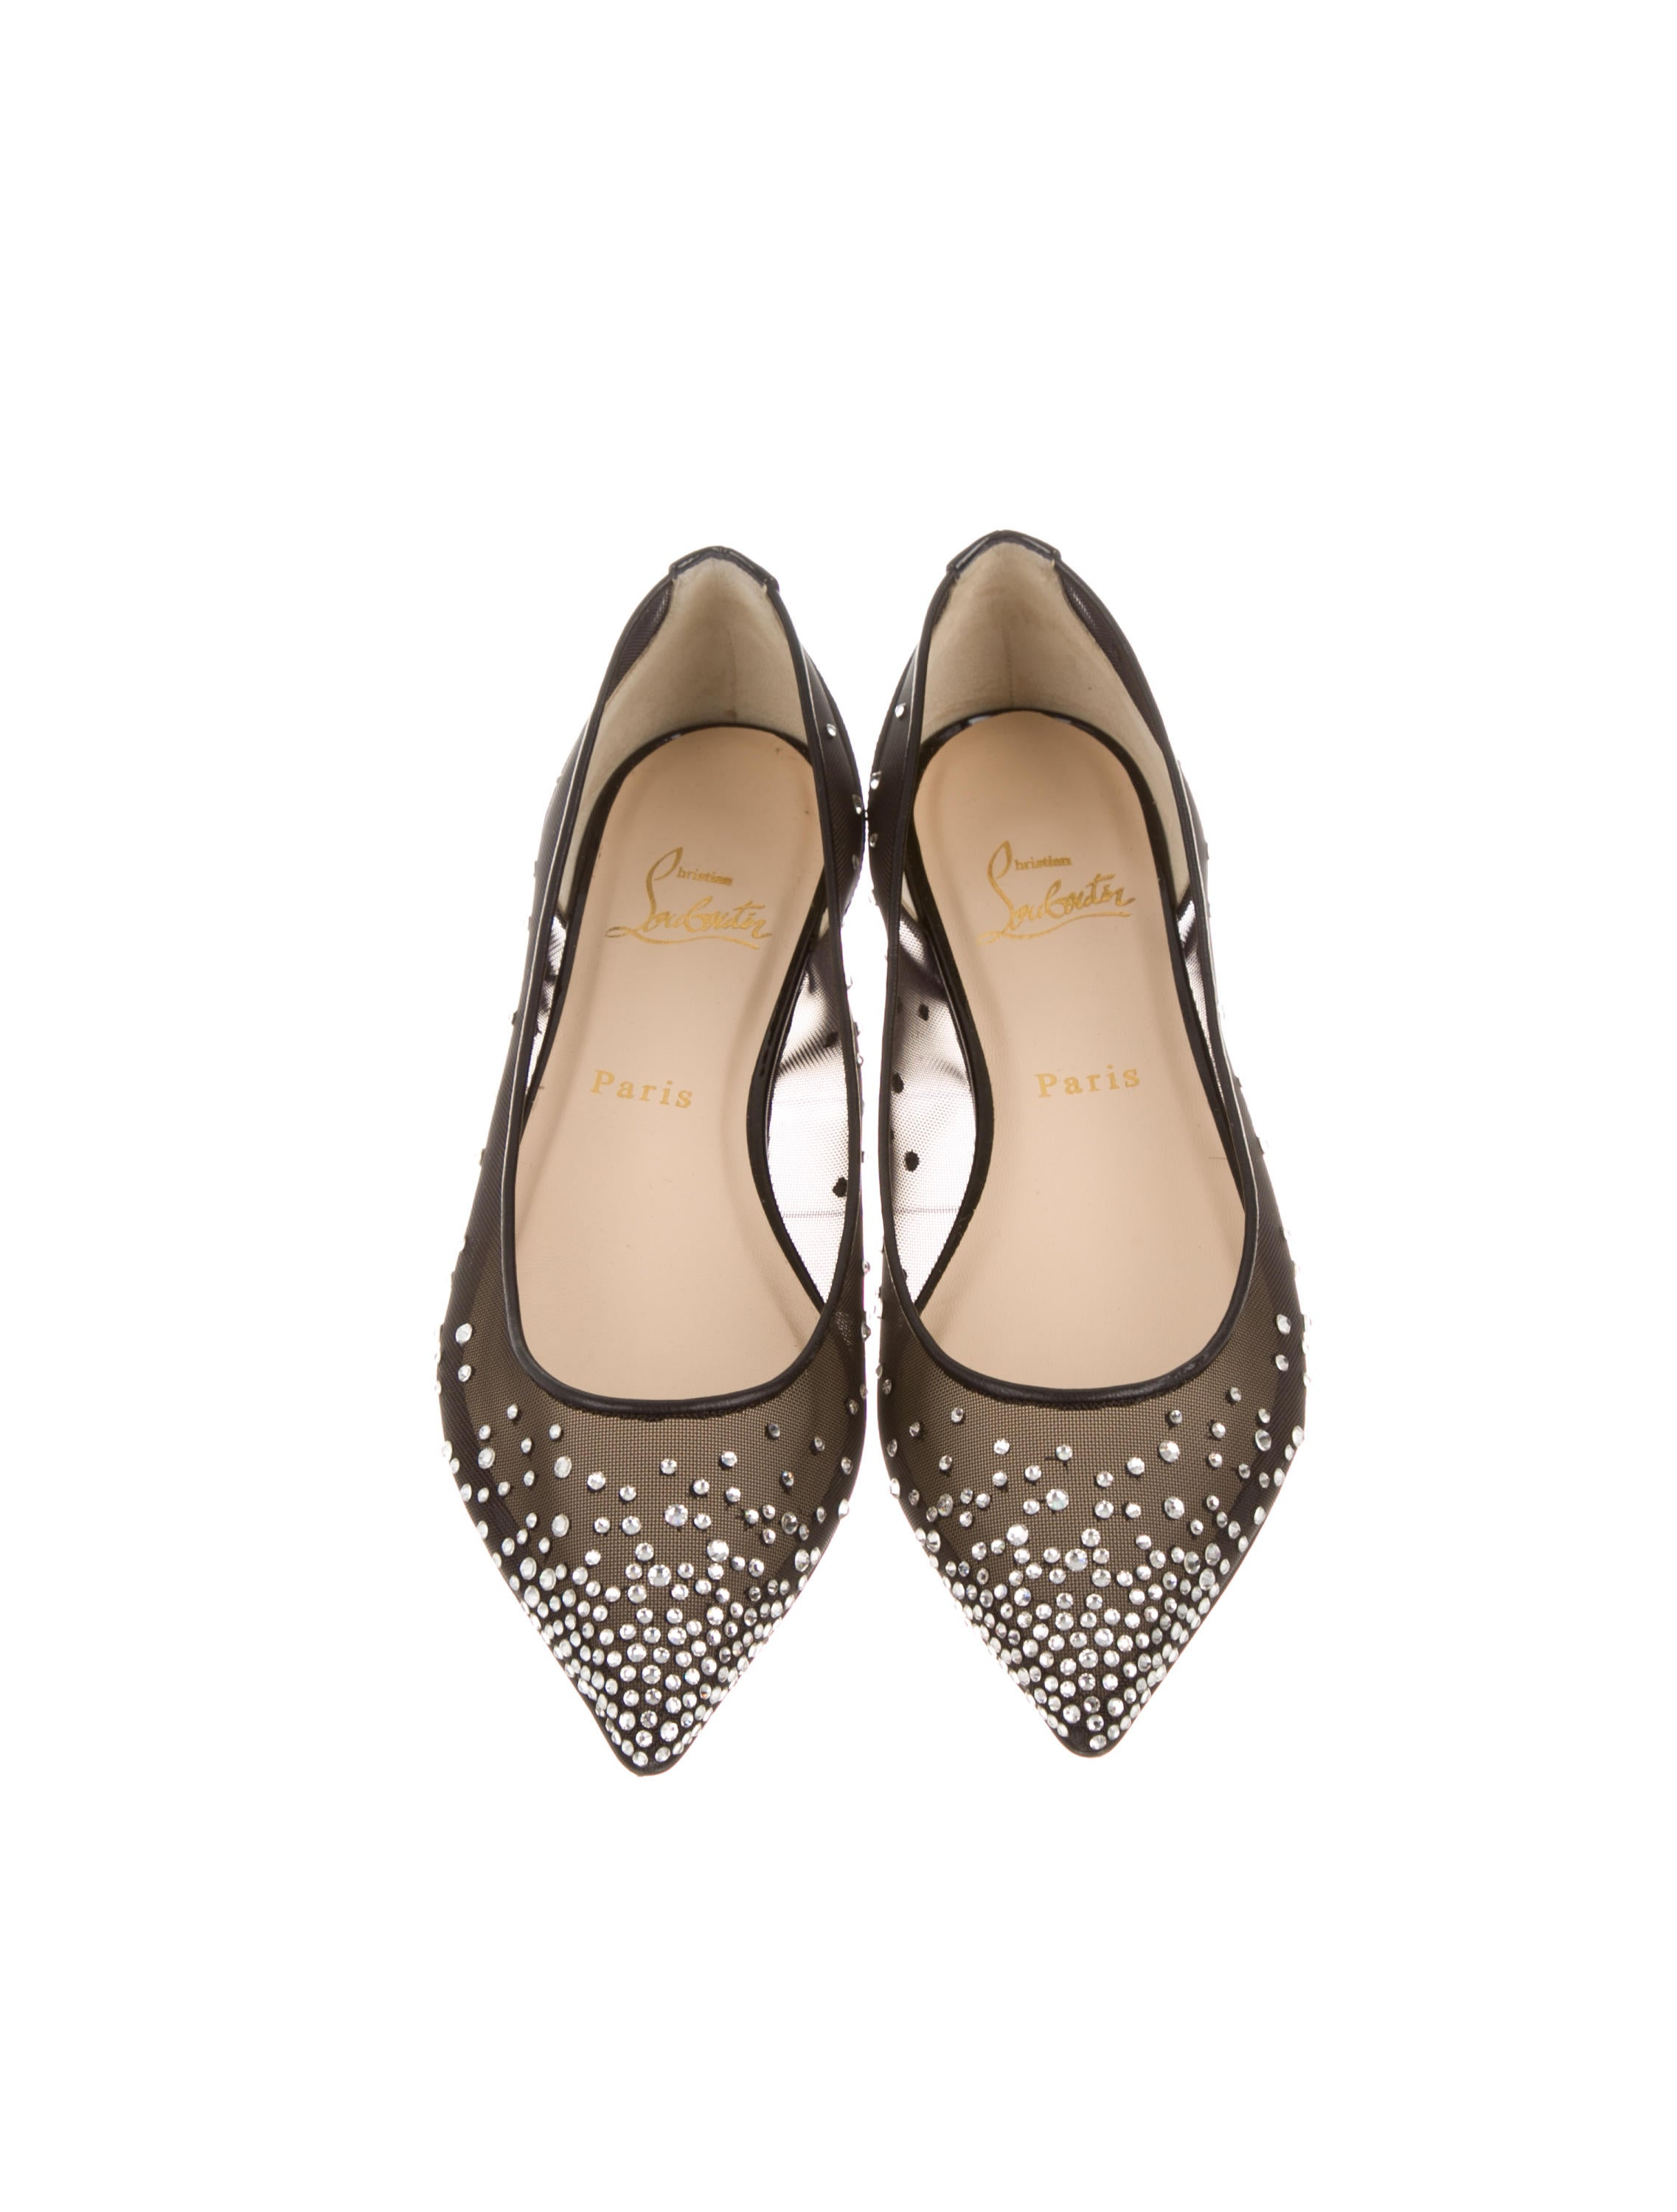 Christian Louboutin Body Strass Pointed-Toe Flats - Shoes ...